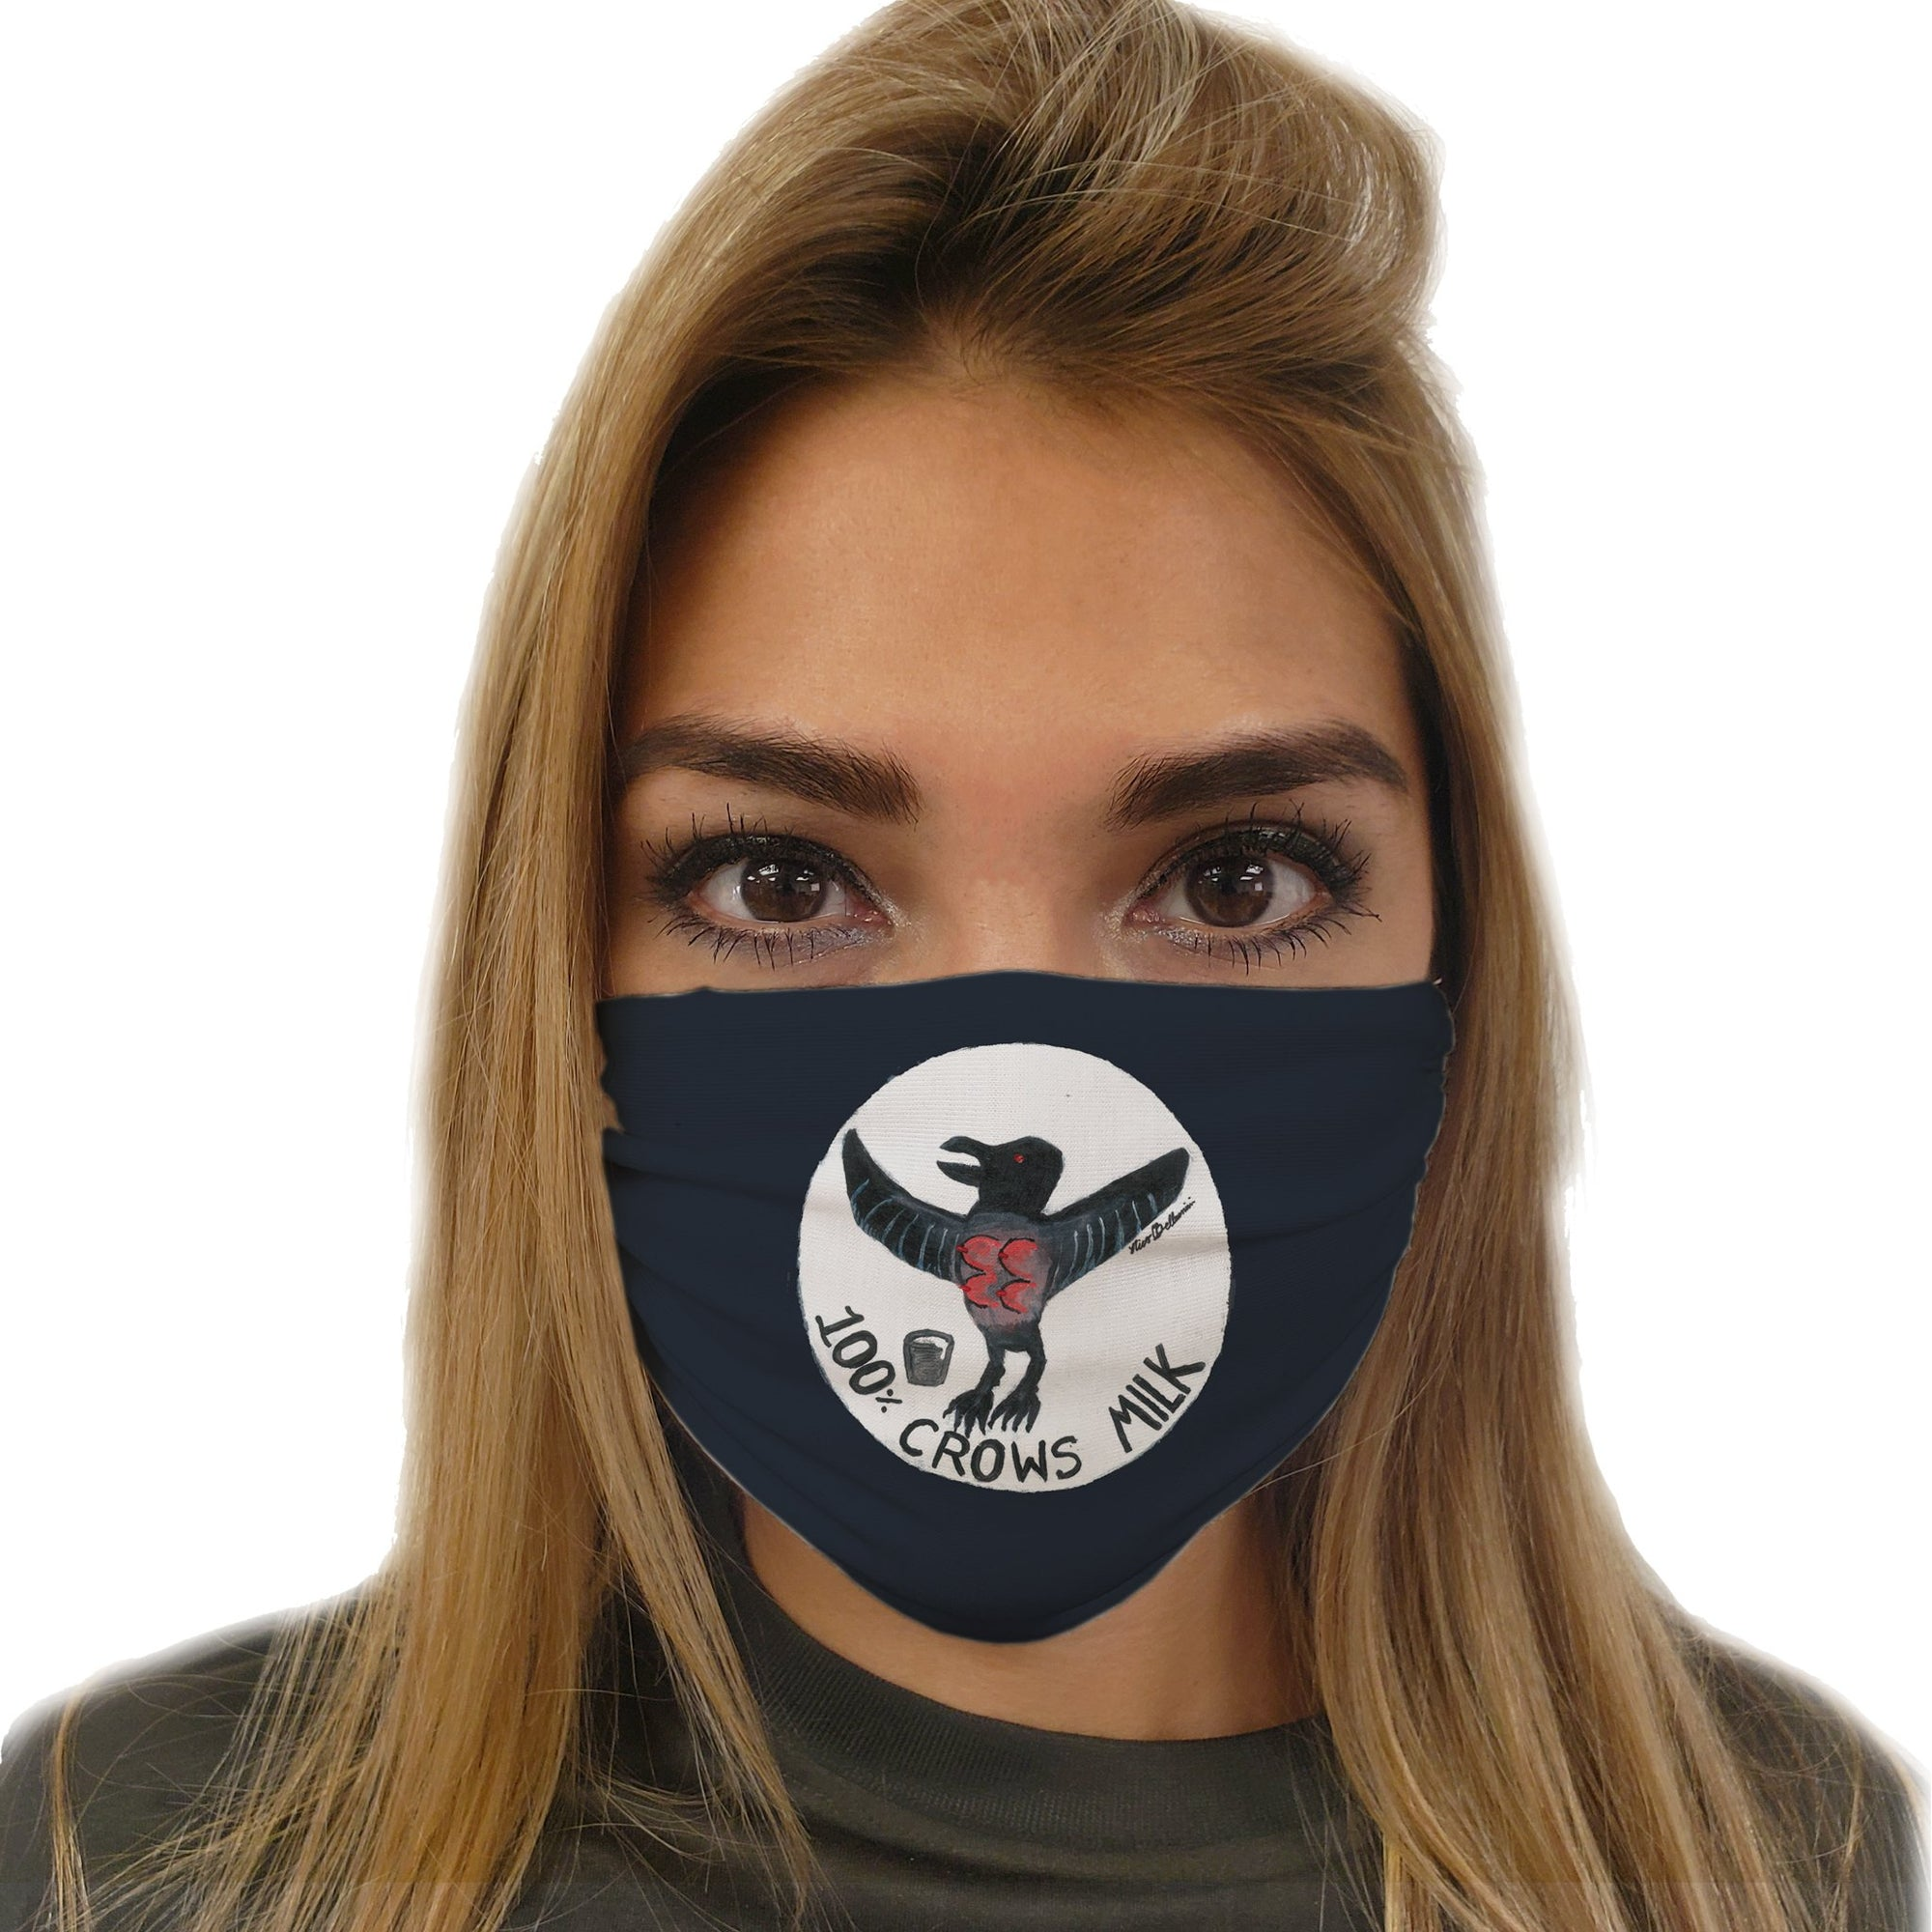 100% Crows Milk Face Mask